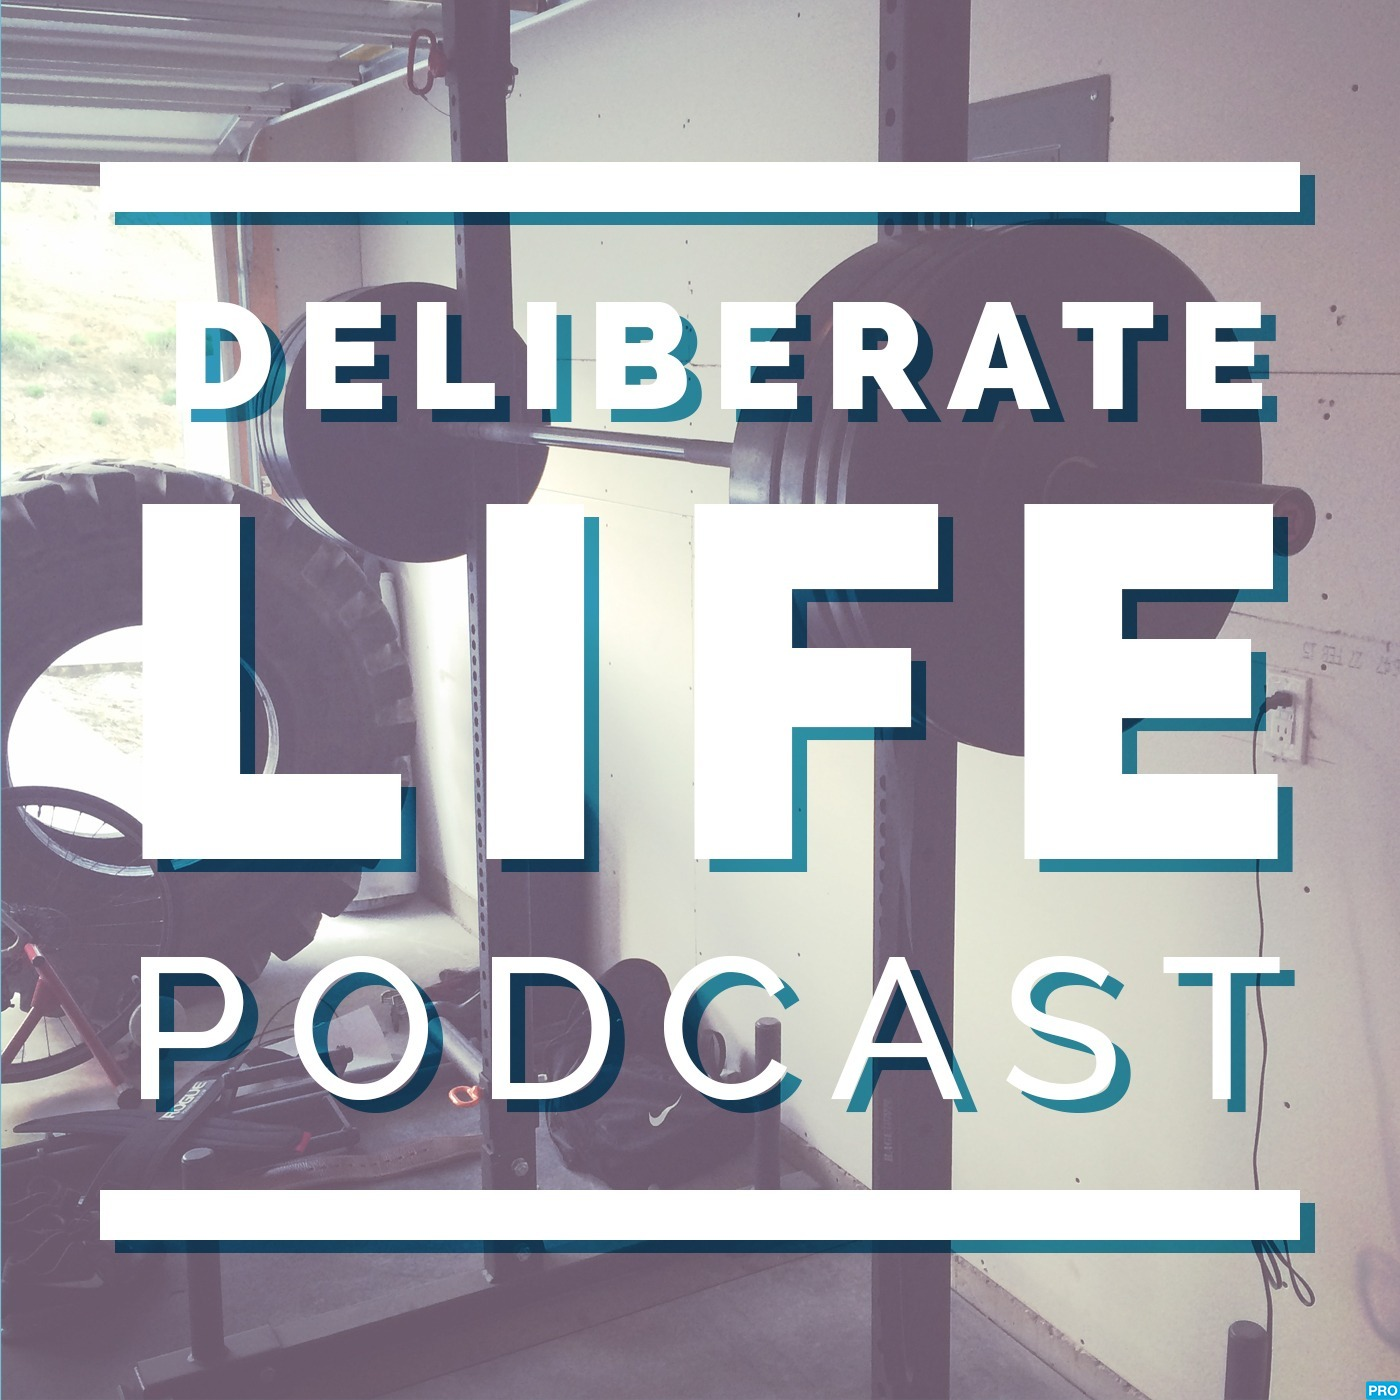 The Deliberate Life Podcast: Nutrition and Fitness for a Deliberate Life